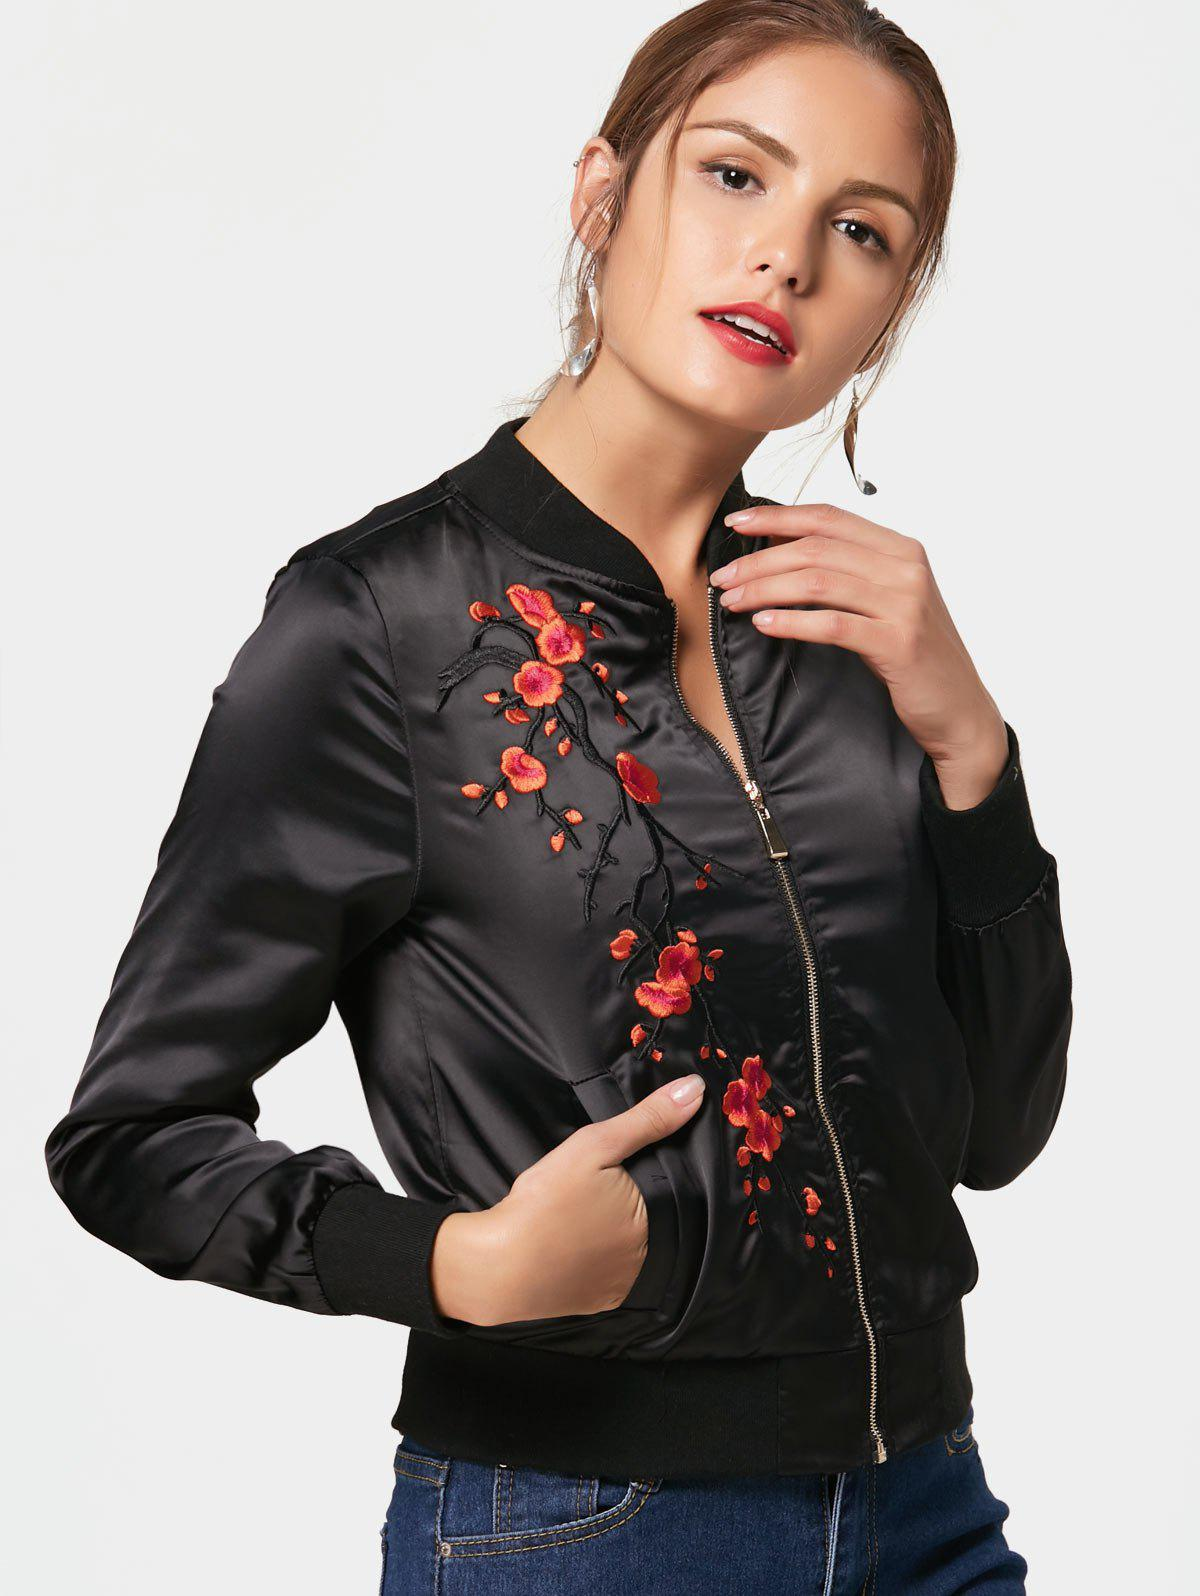 Plum Blossom Embroidery Bomber Jacket - BLACK 2XL